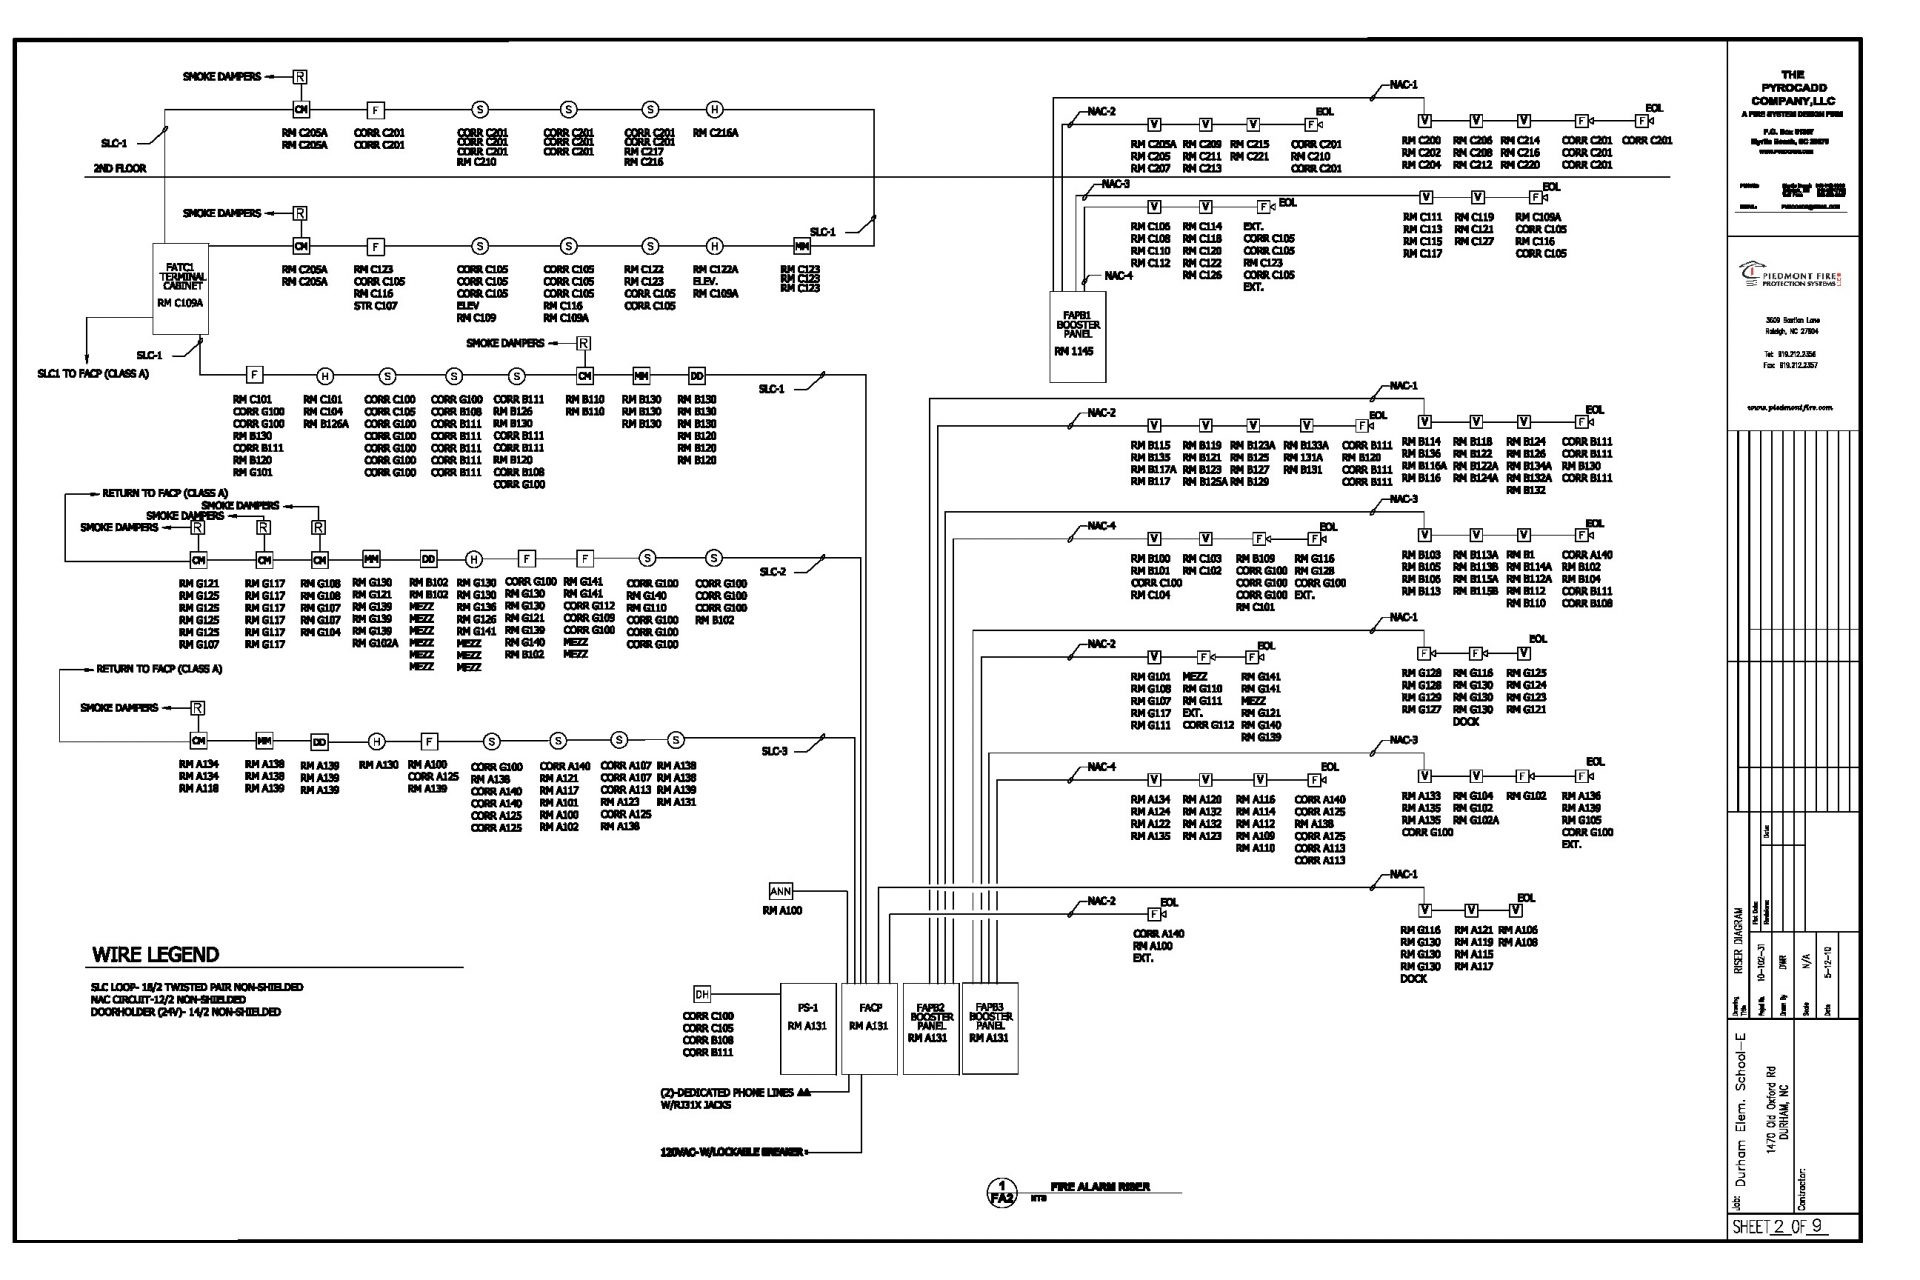 fire alarm flow switch wiring diagram Collection-Smoke Detector Wiring Diagram Pdf Fresh Addressable Fire Alarm Diagrams For Schematic Non Pull Station 9 8-f